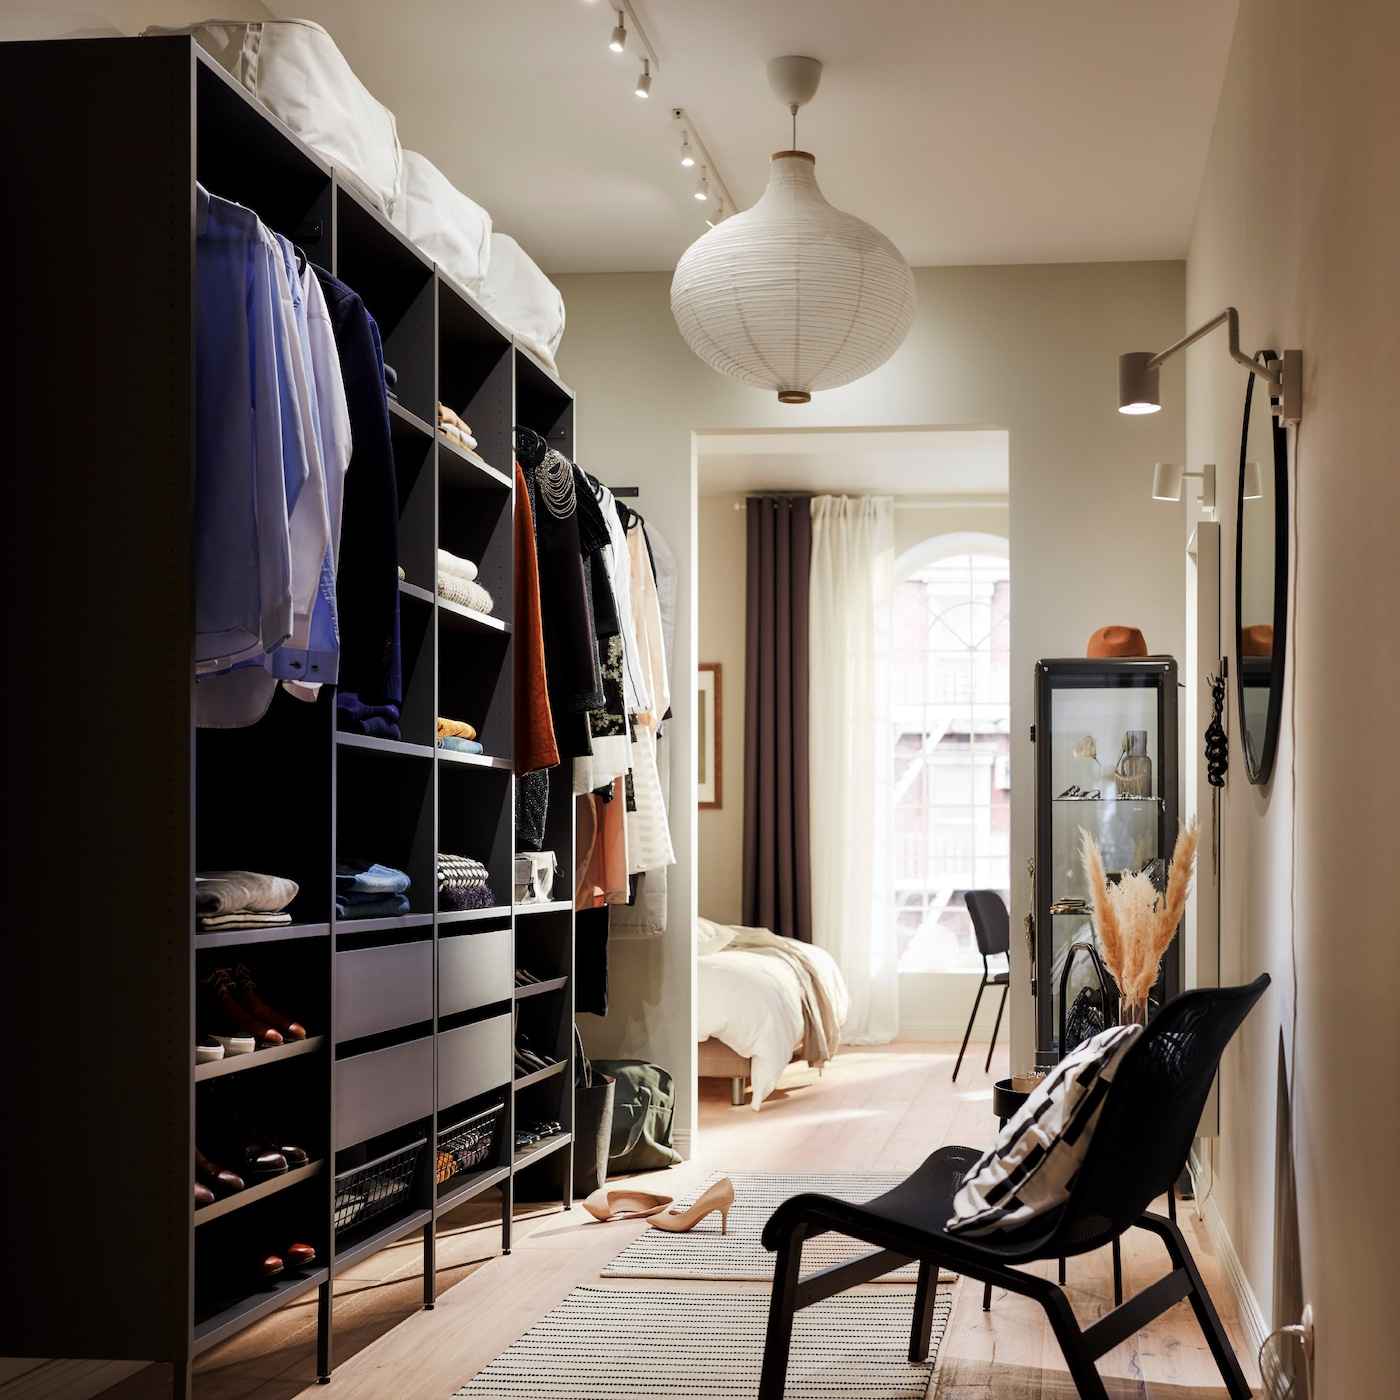 A large, open wardrobe solution with folded clothes on shelves, hanging clothes on rails, and four drawers.